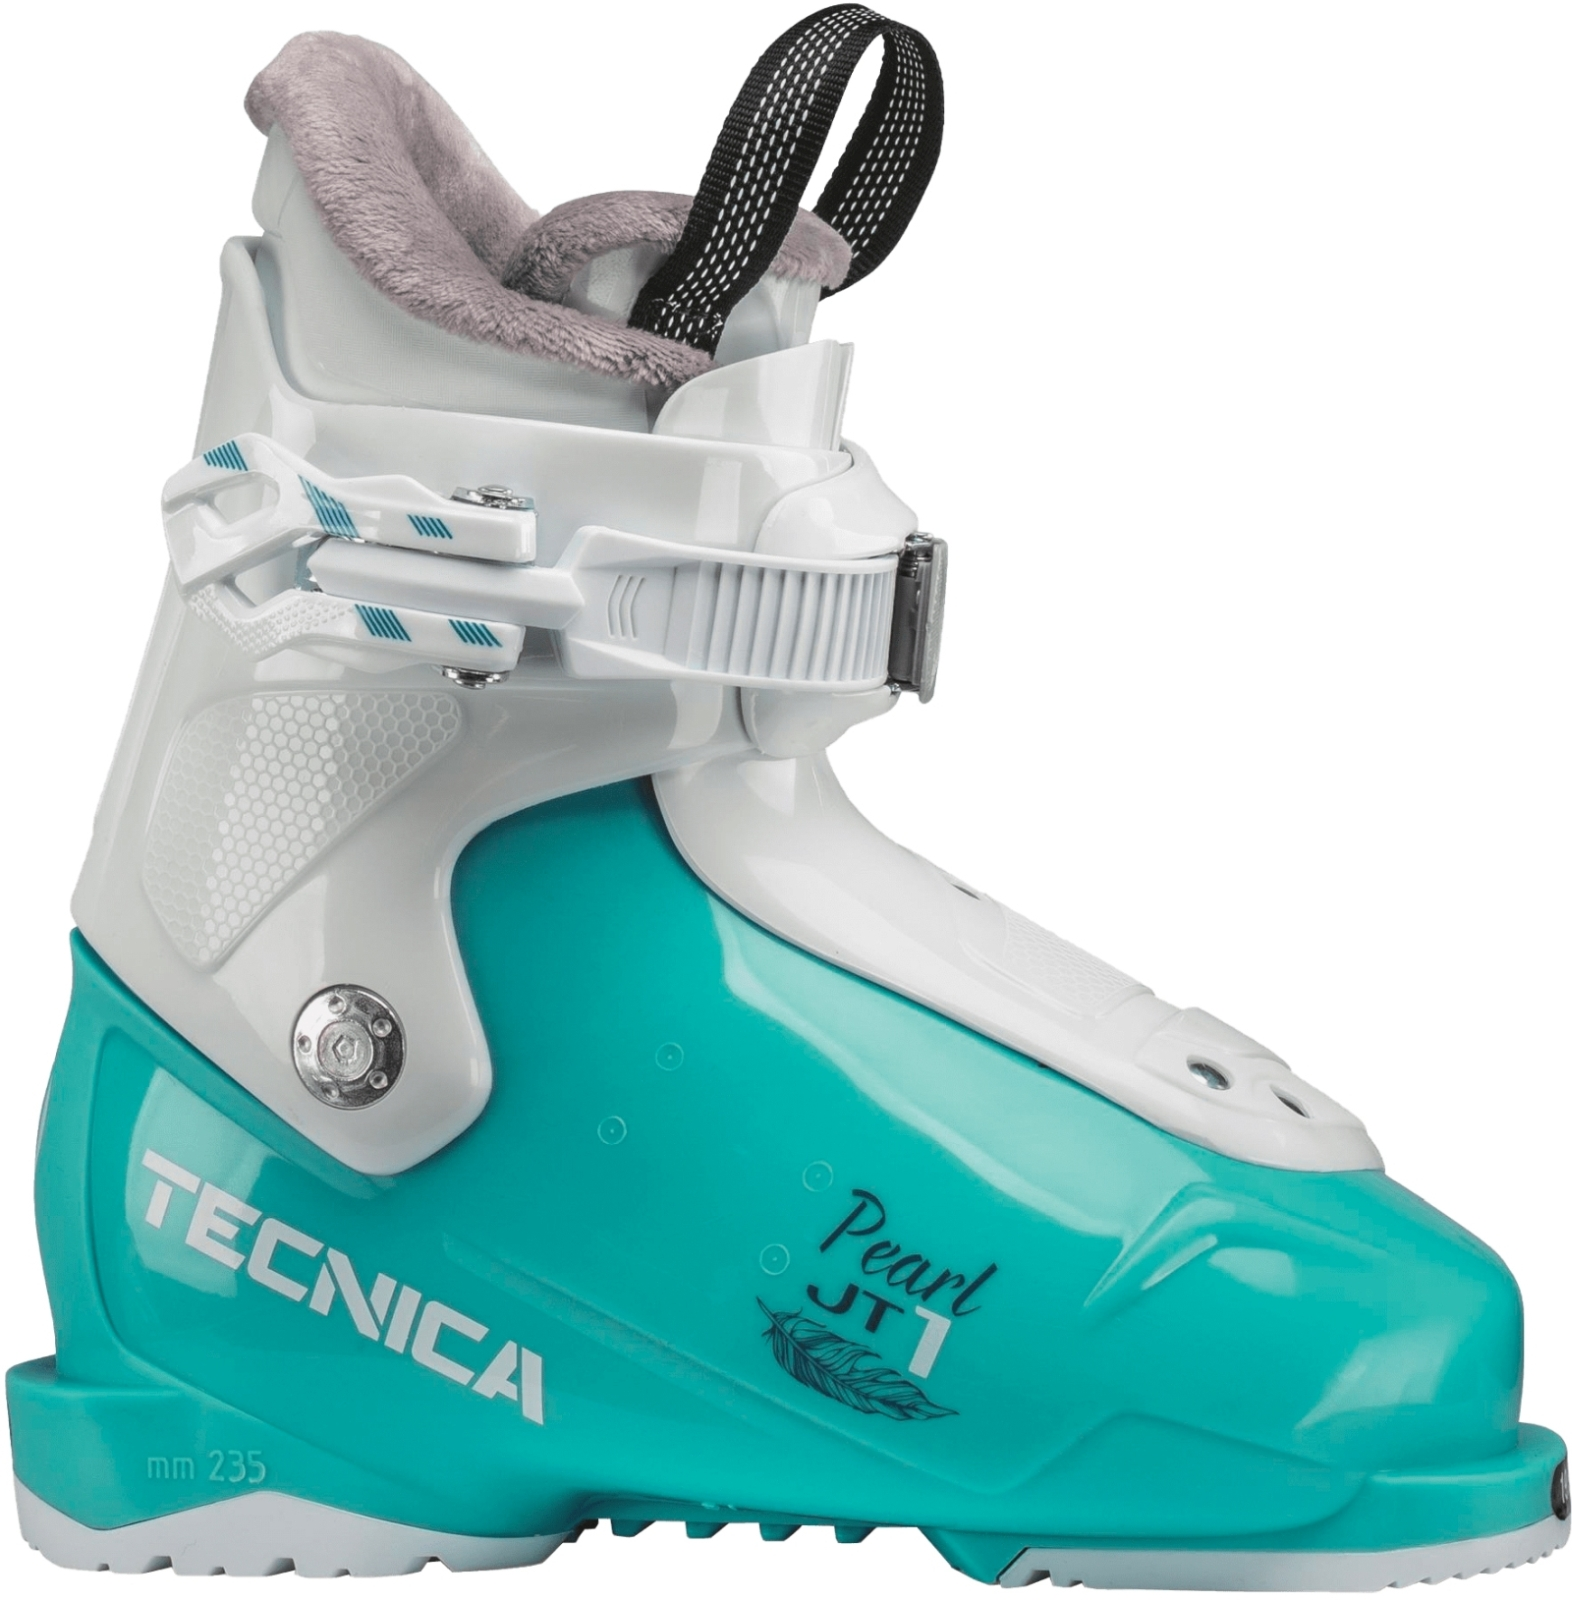 Tecnica JT 1 - light blue 155